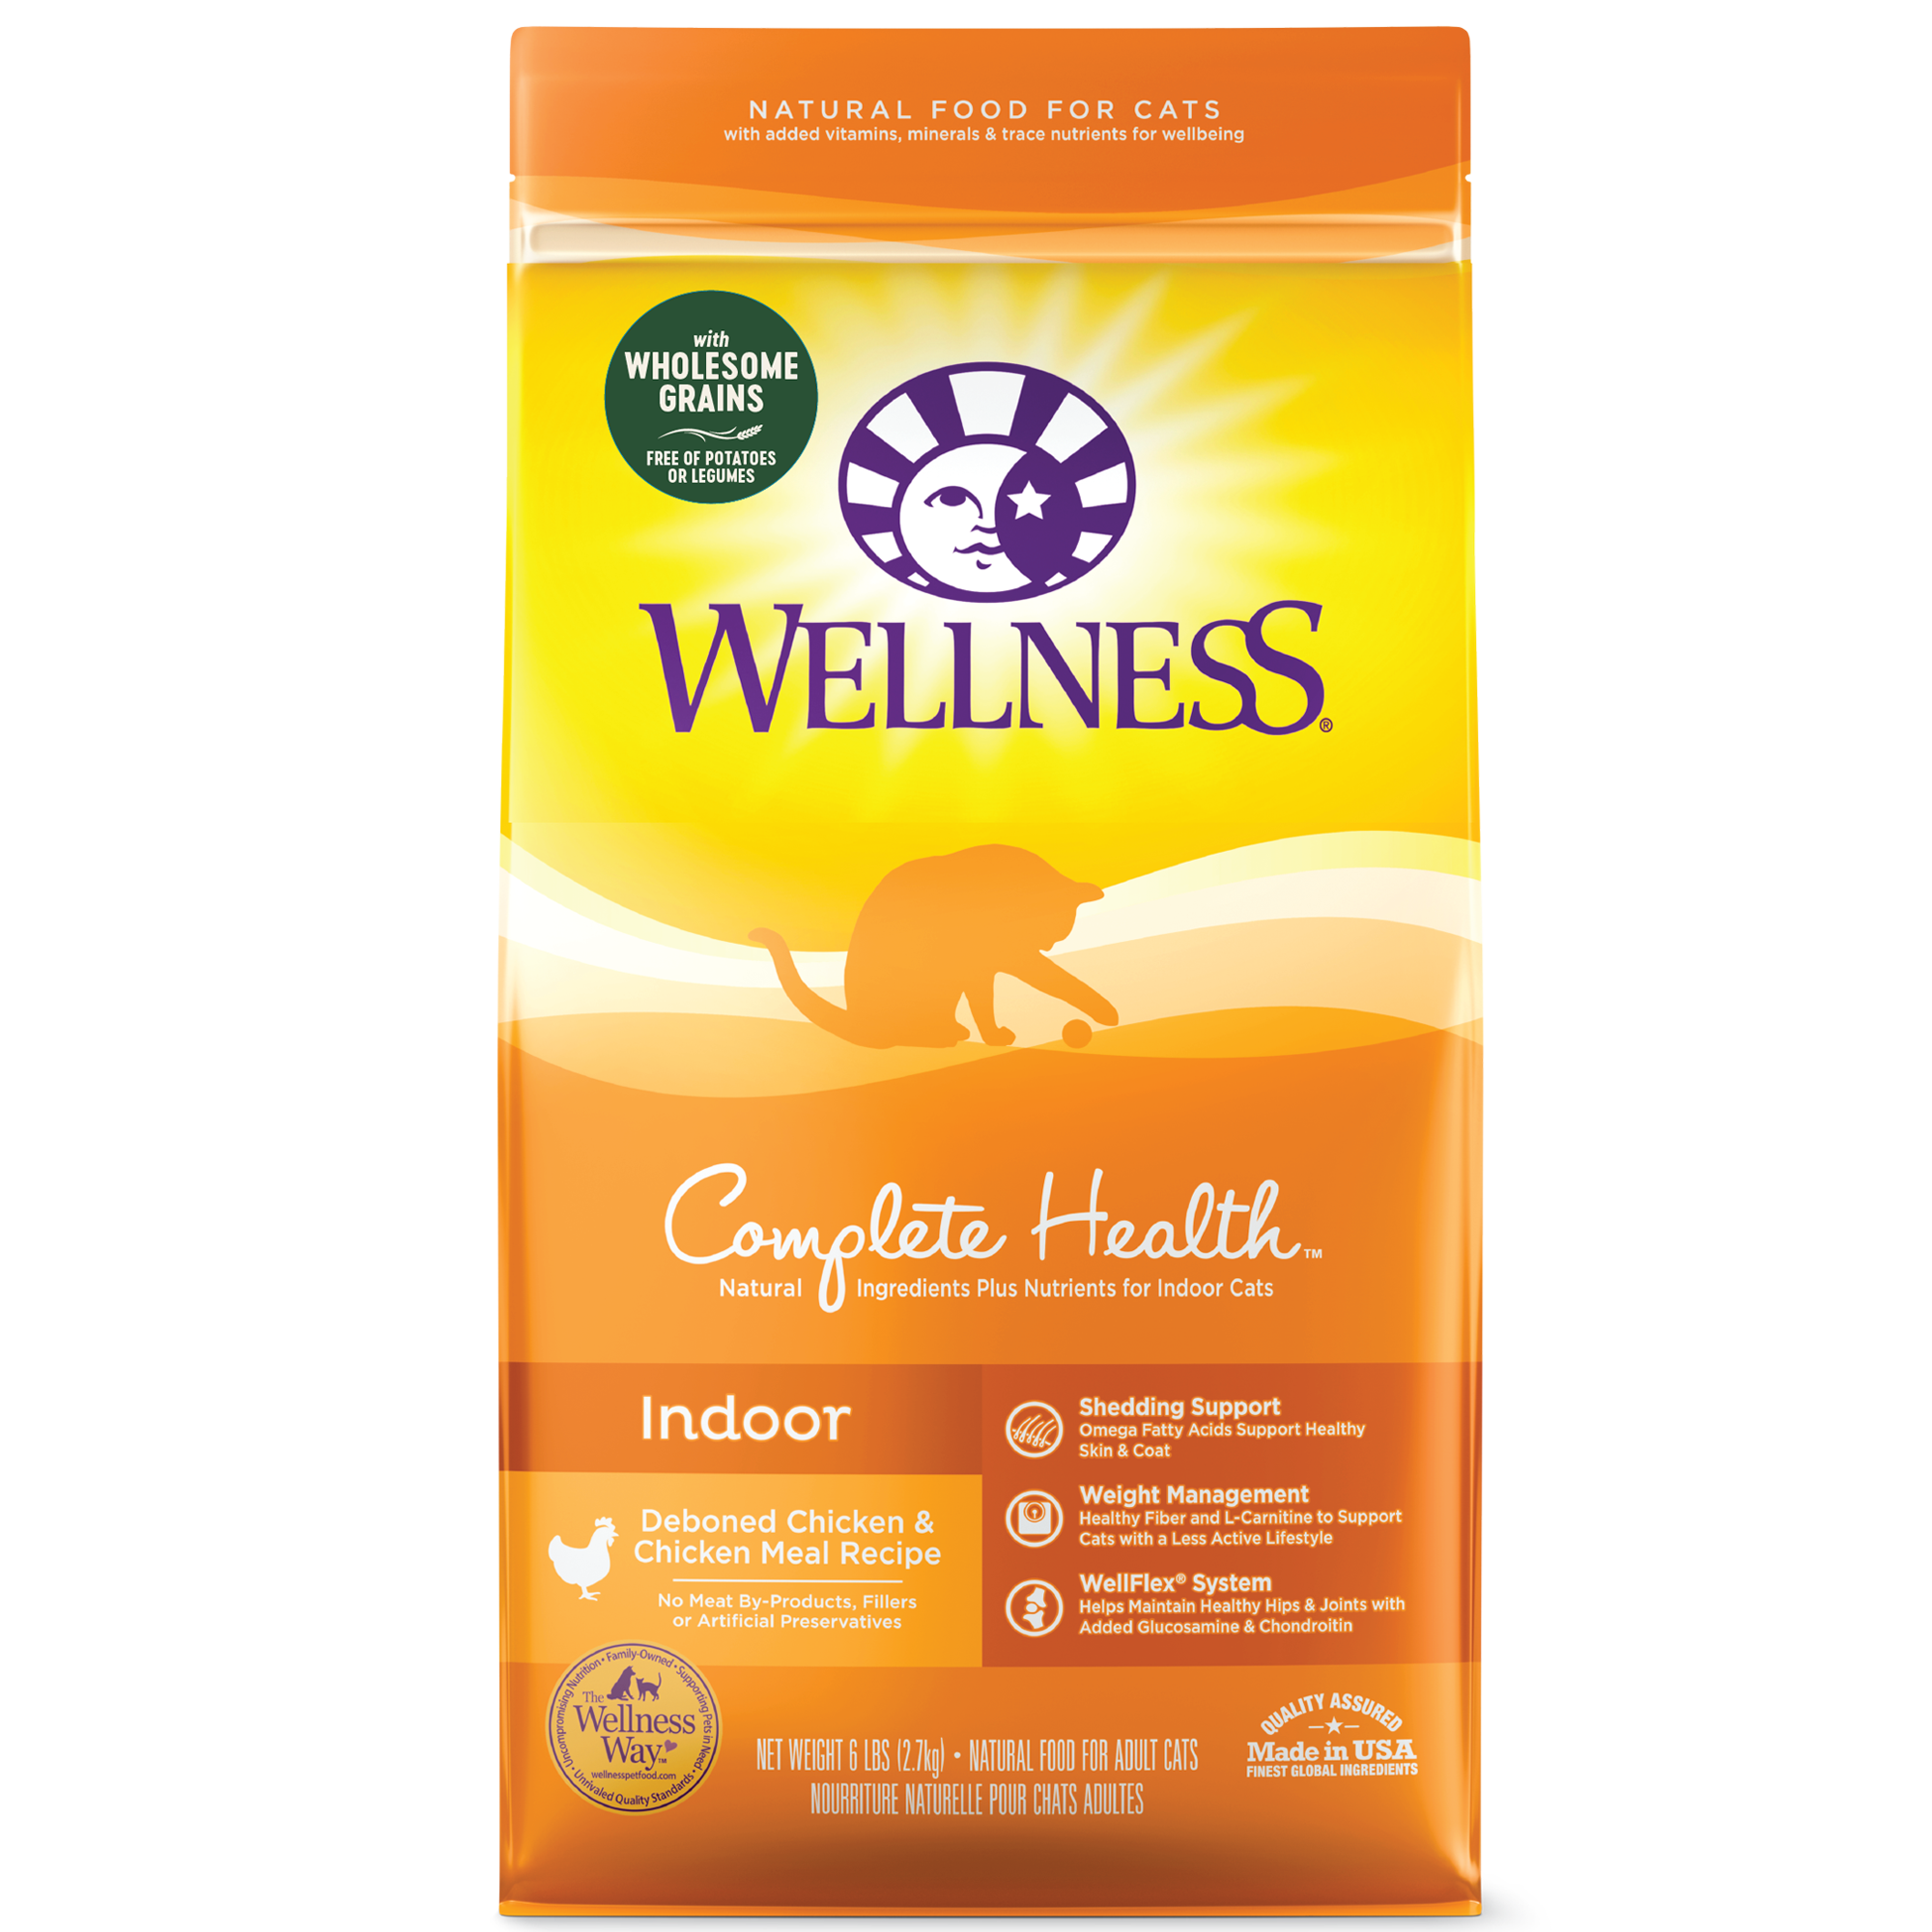 Wellness Complete Health Grains dry cat food